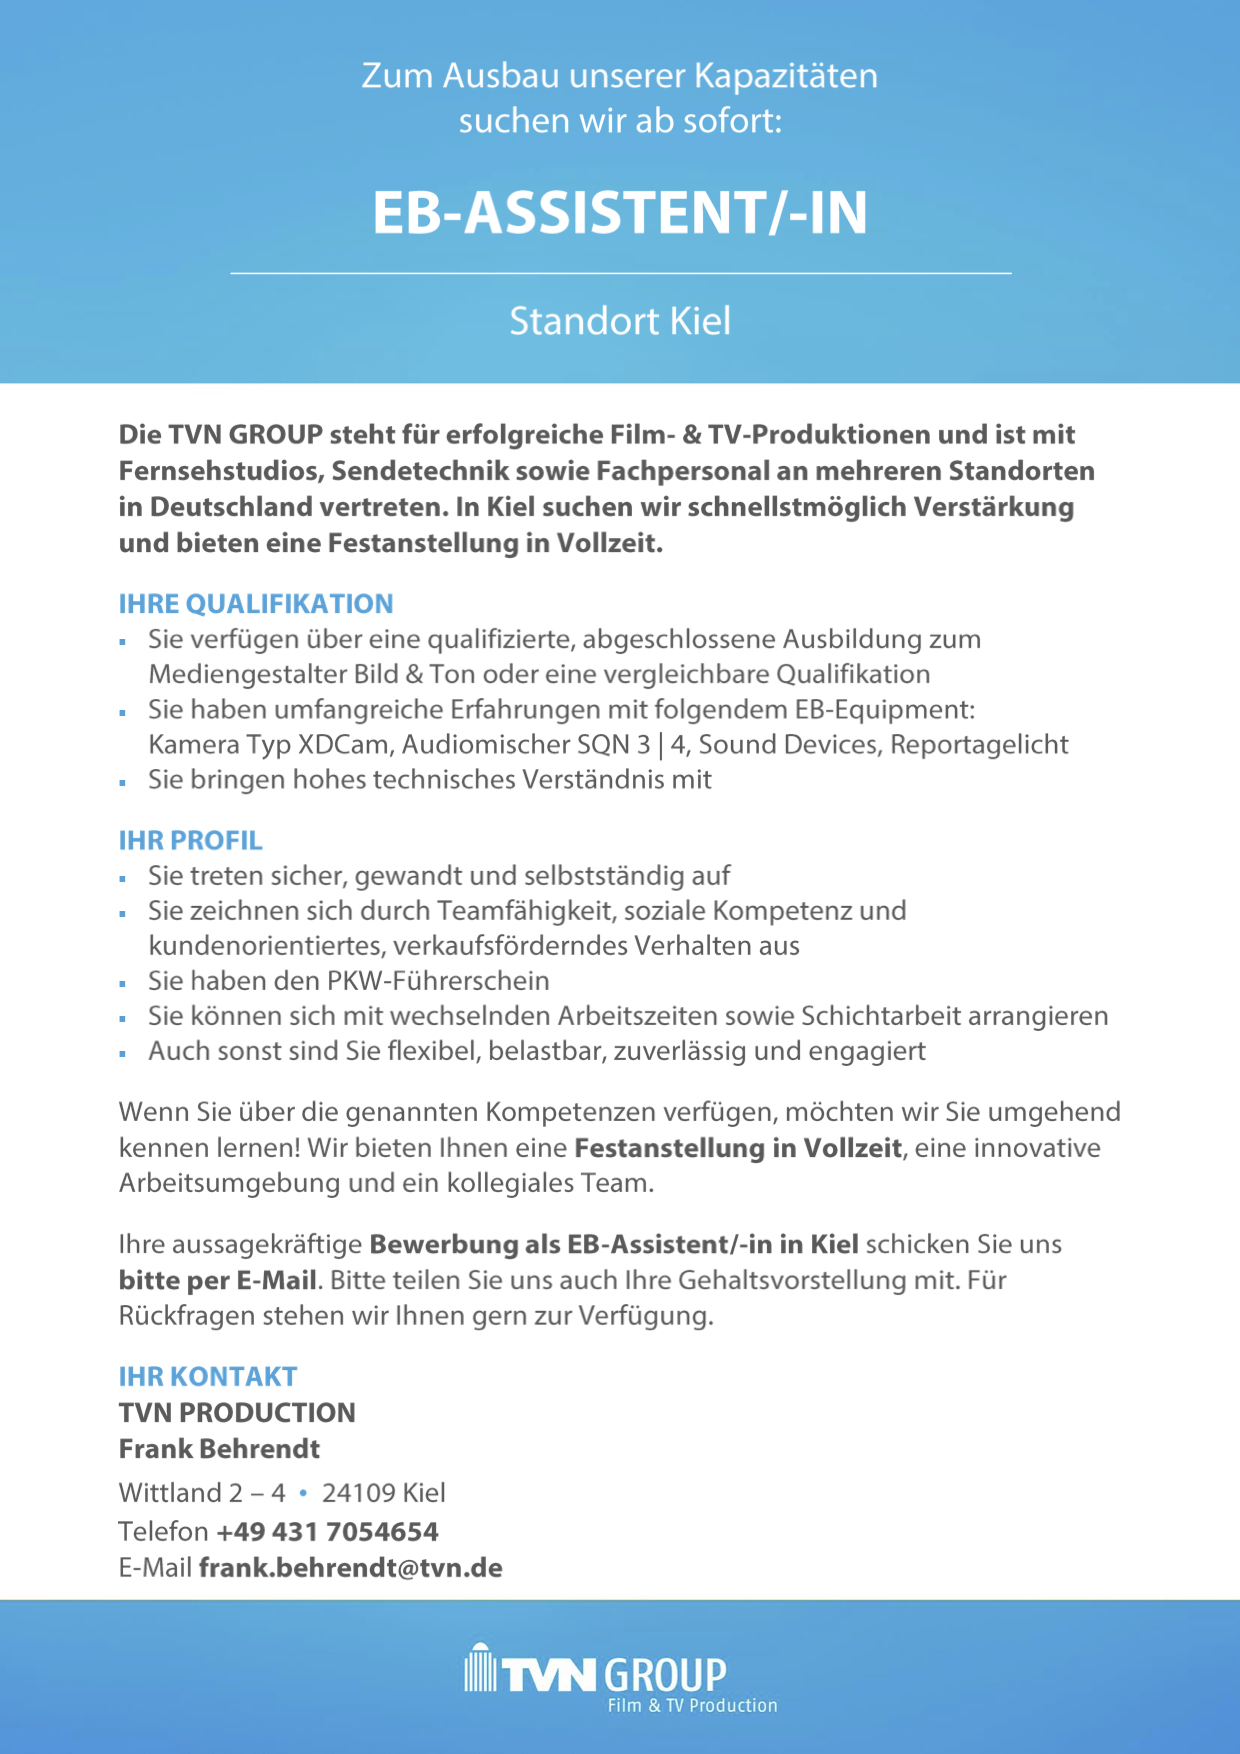 EB-Assistent/-in